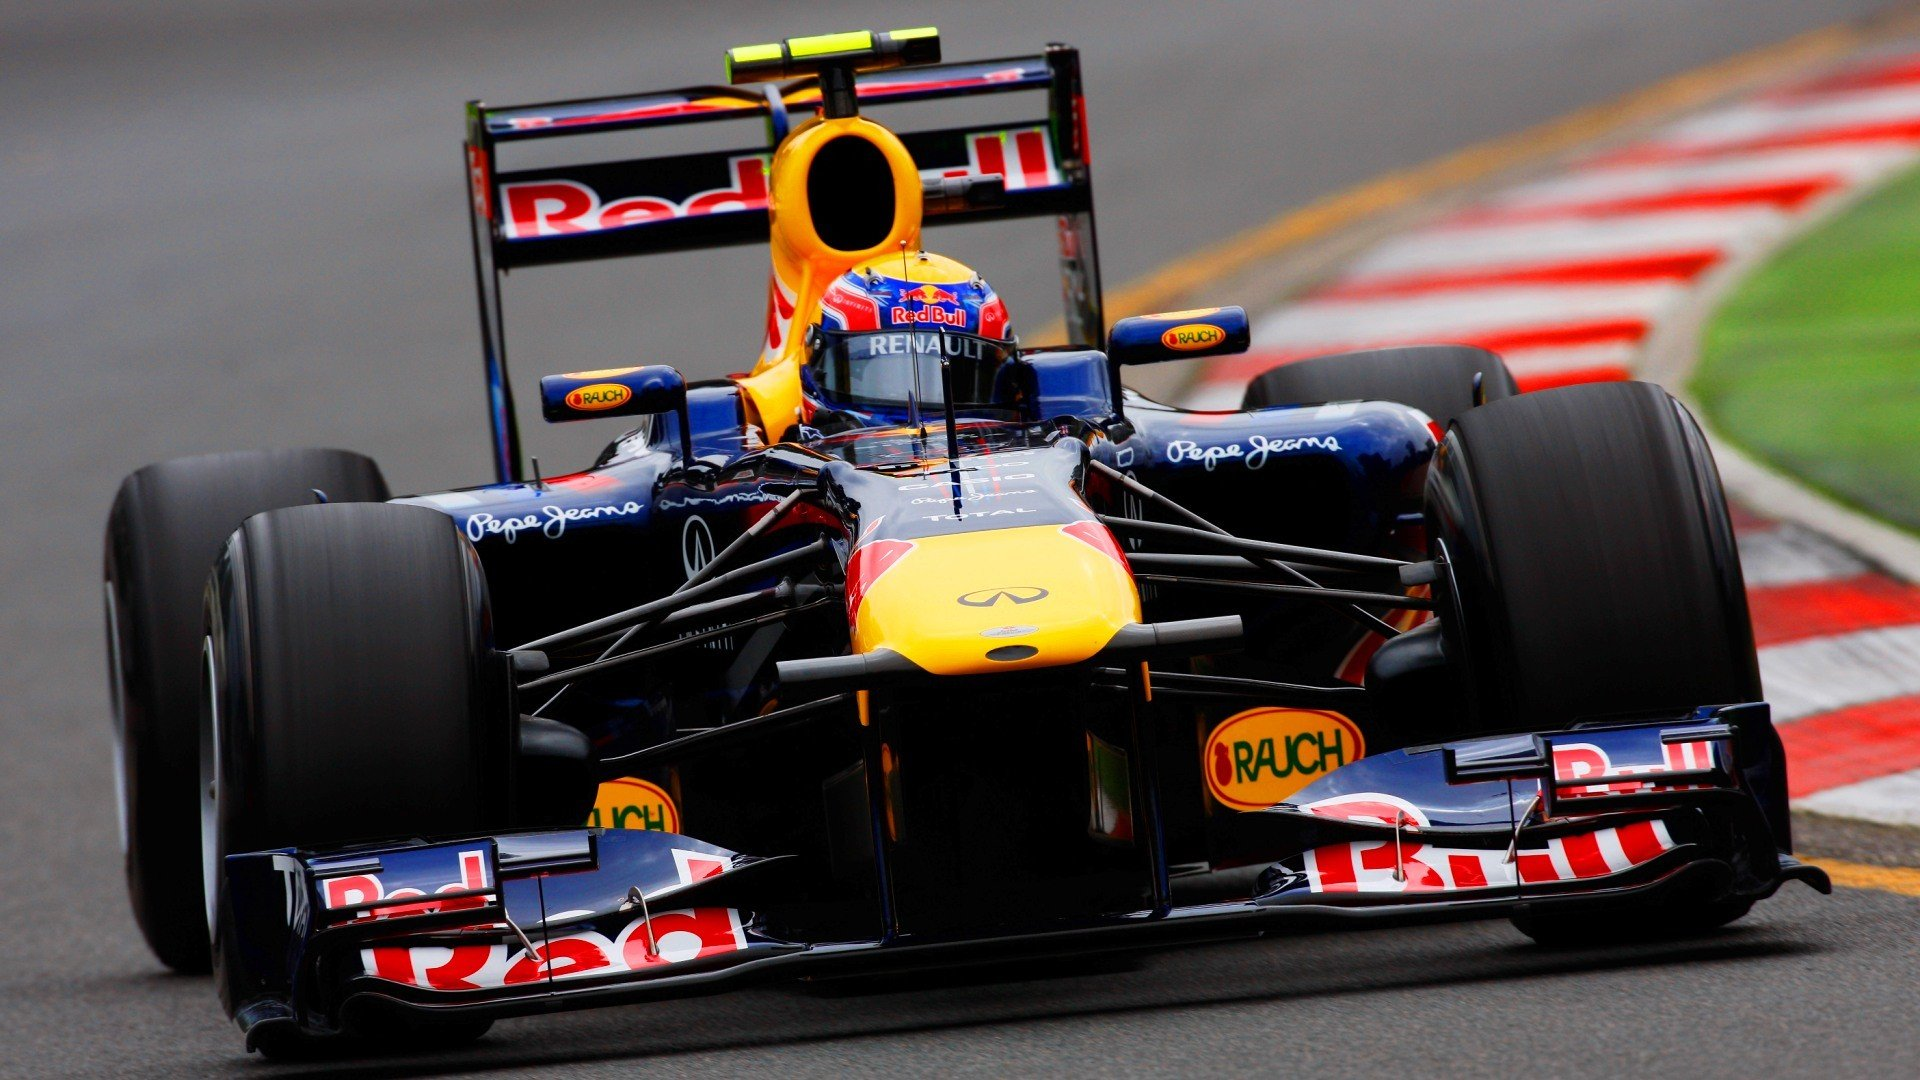 Cars Sports Formula One Australian Red Bull Red Bull Racing Wallpaper 1920x1080 255572 Wallpaperup